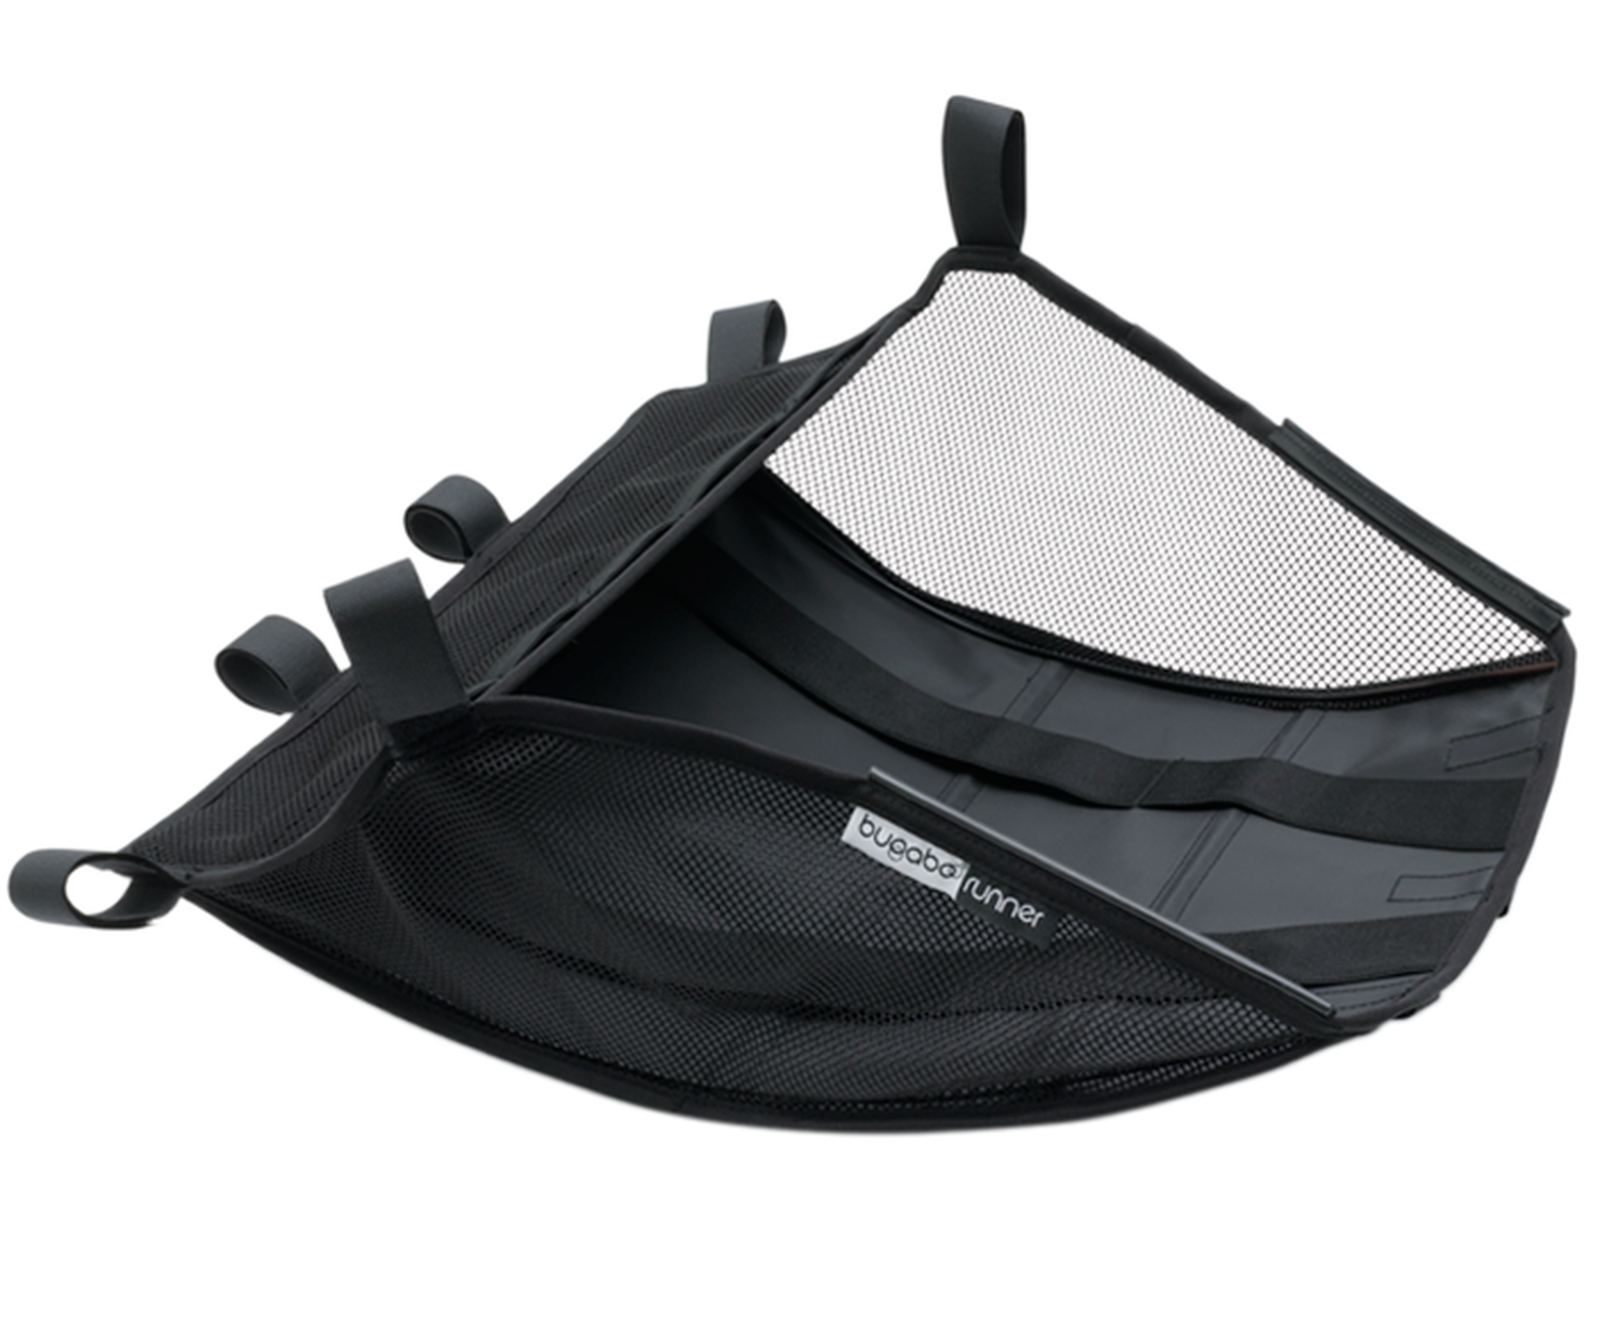 Bugaboo Runner underseat basket